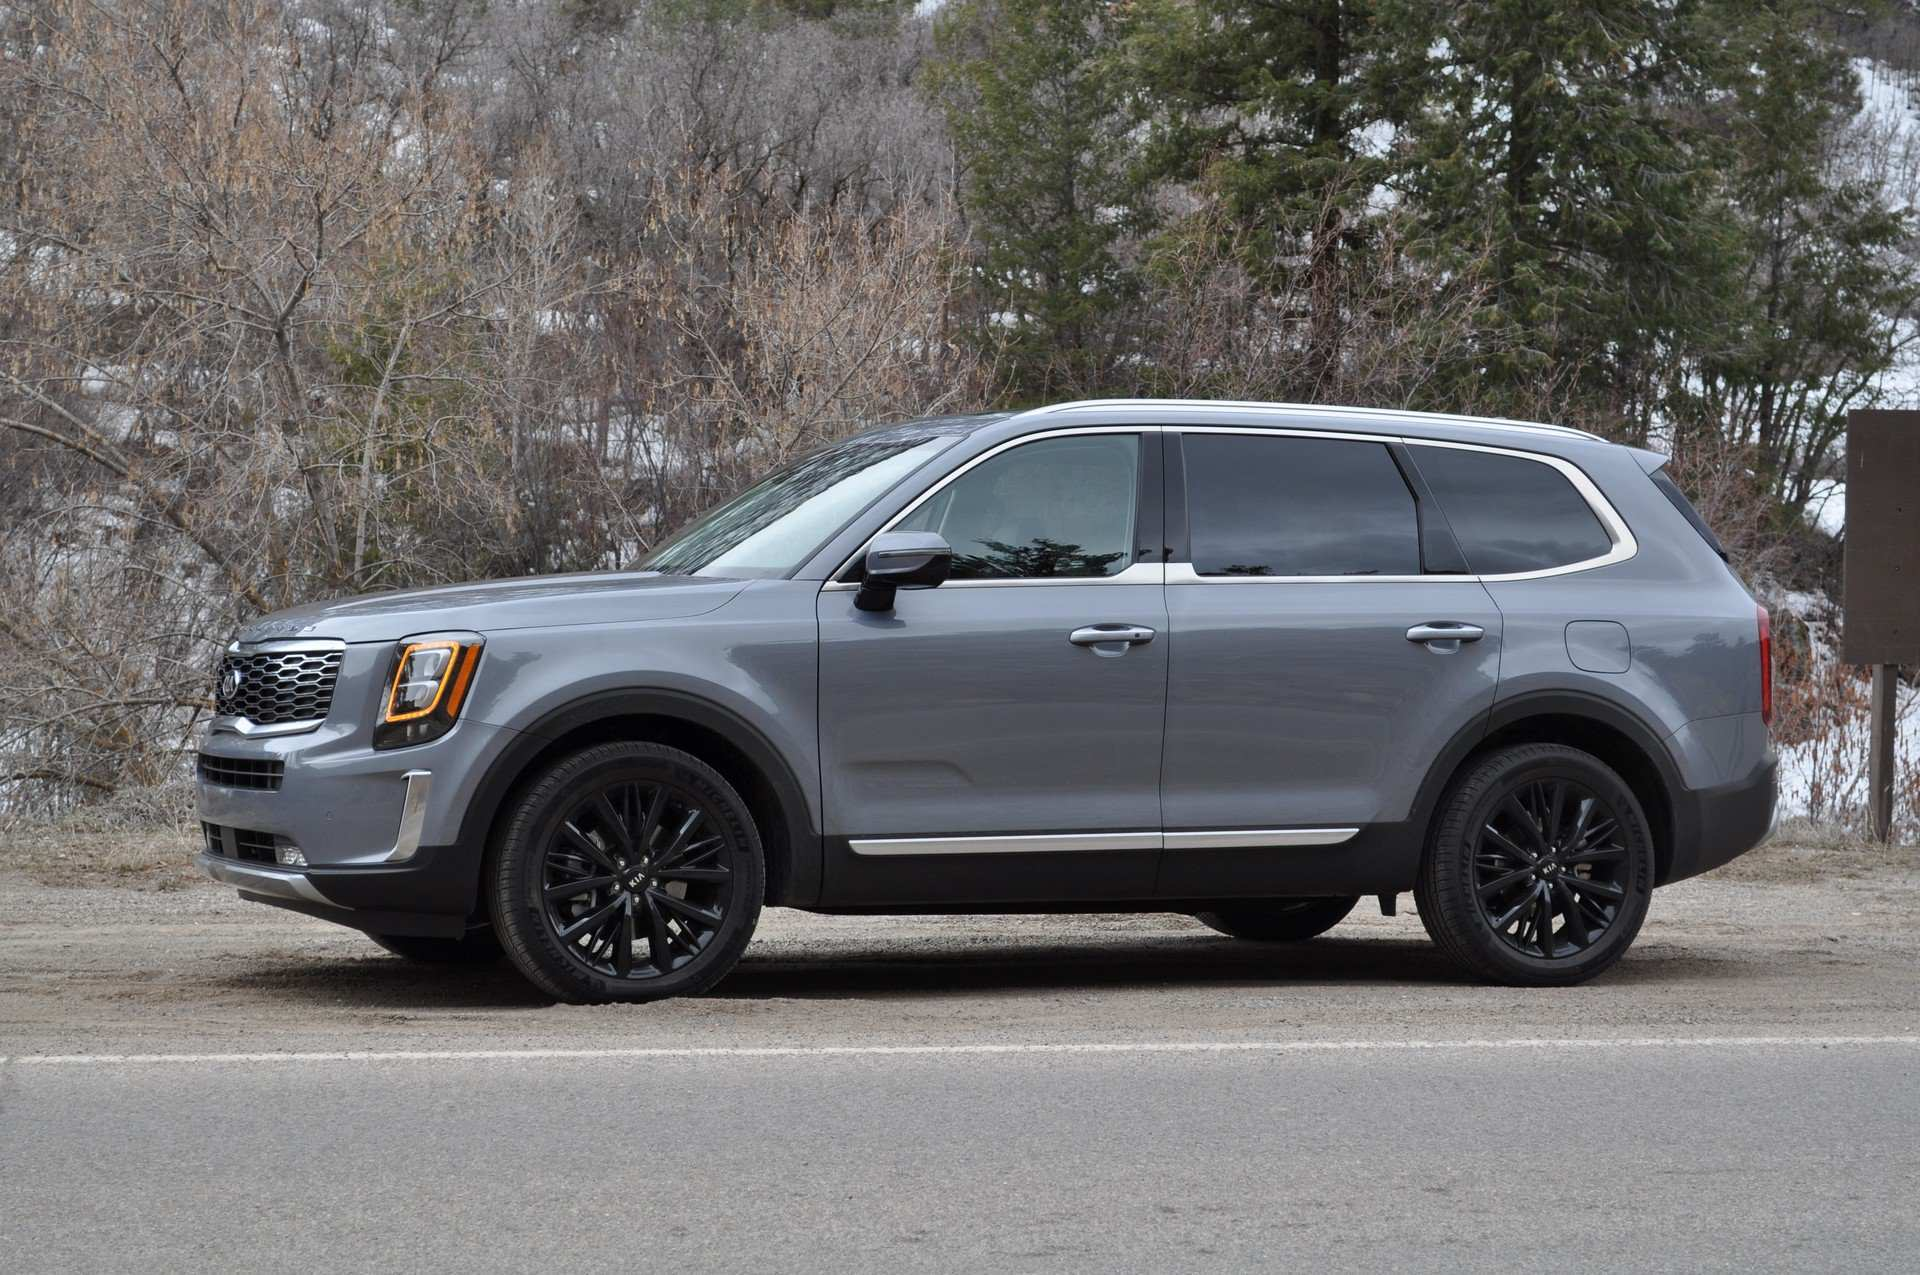 40 Gallery of 2020 Kia Telluride Trim Levels Review for 2020 Kia Telluride Trim Levels